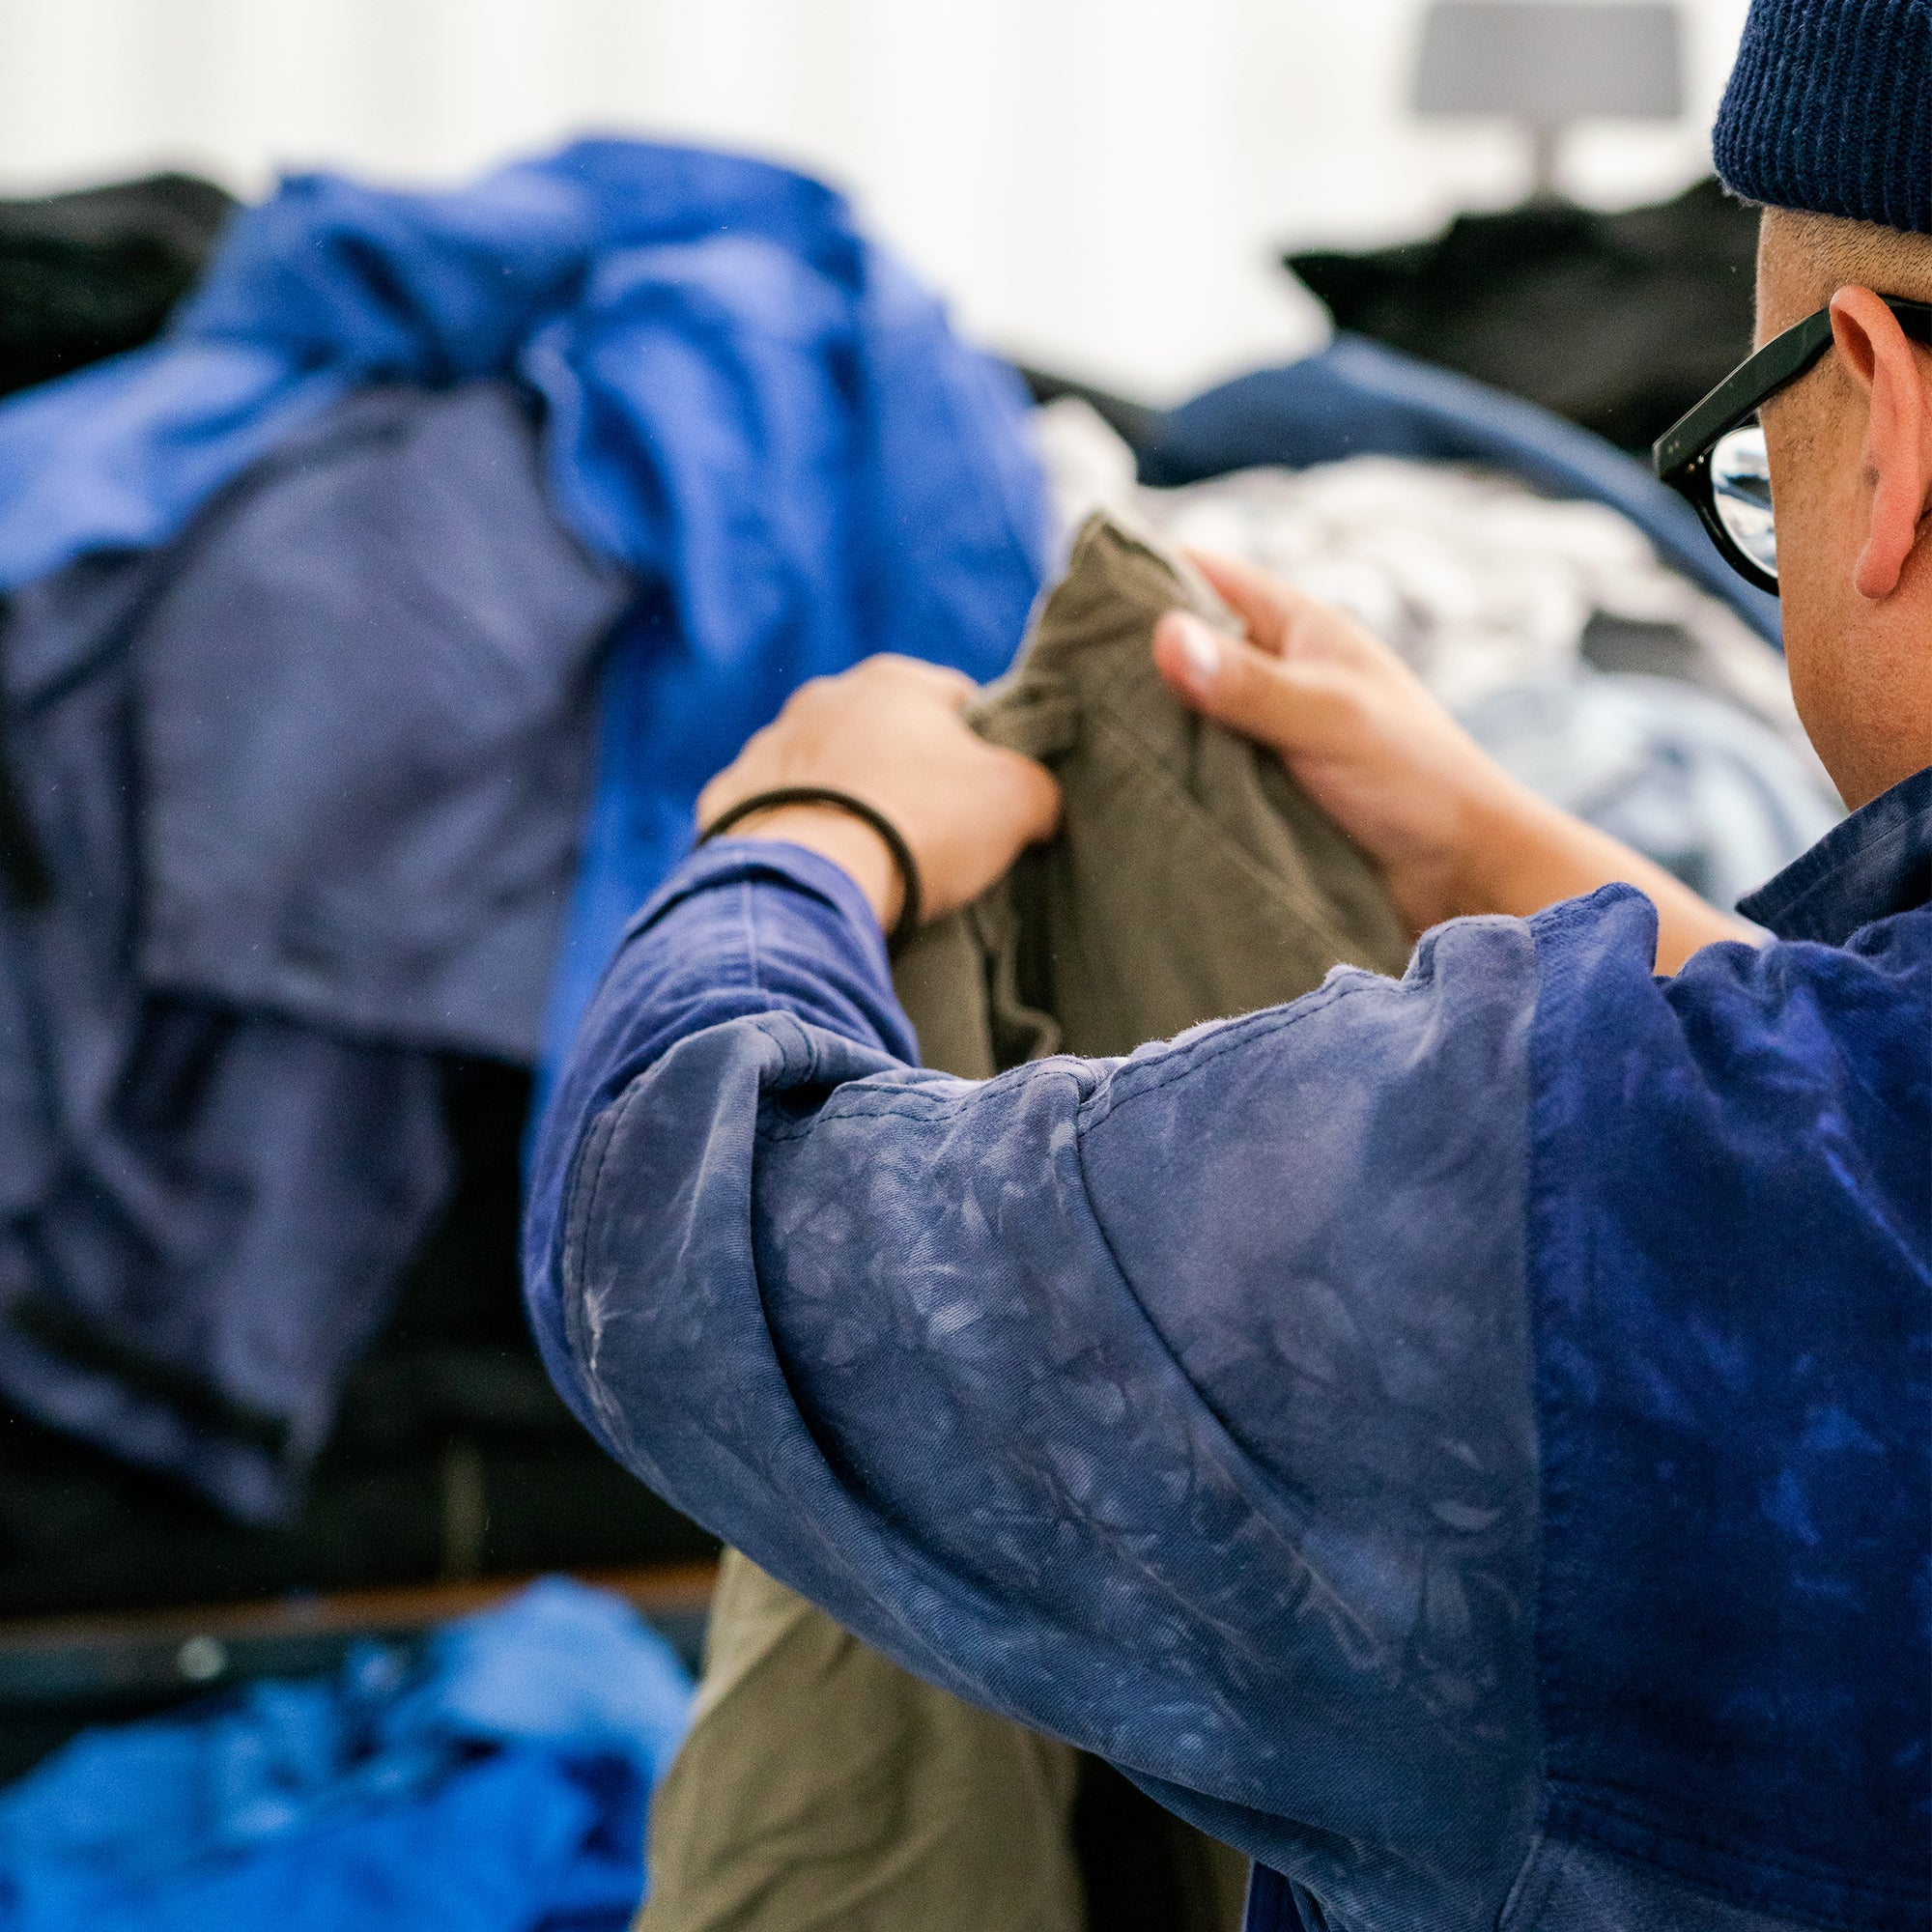 Image of man sorting a pile of reclamed fabric